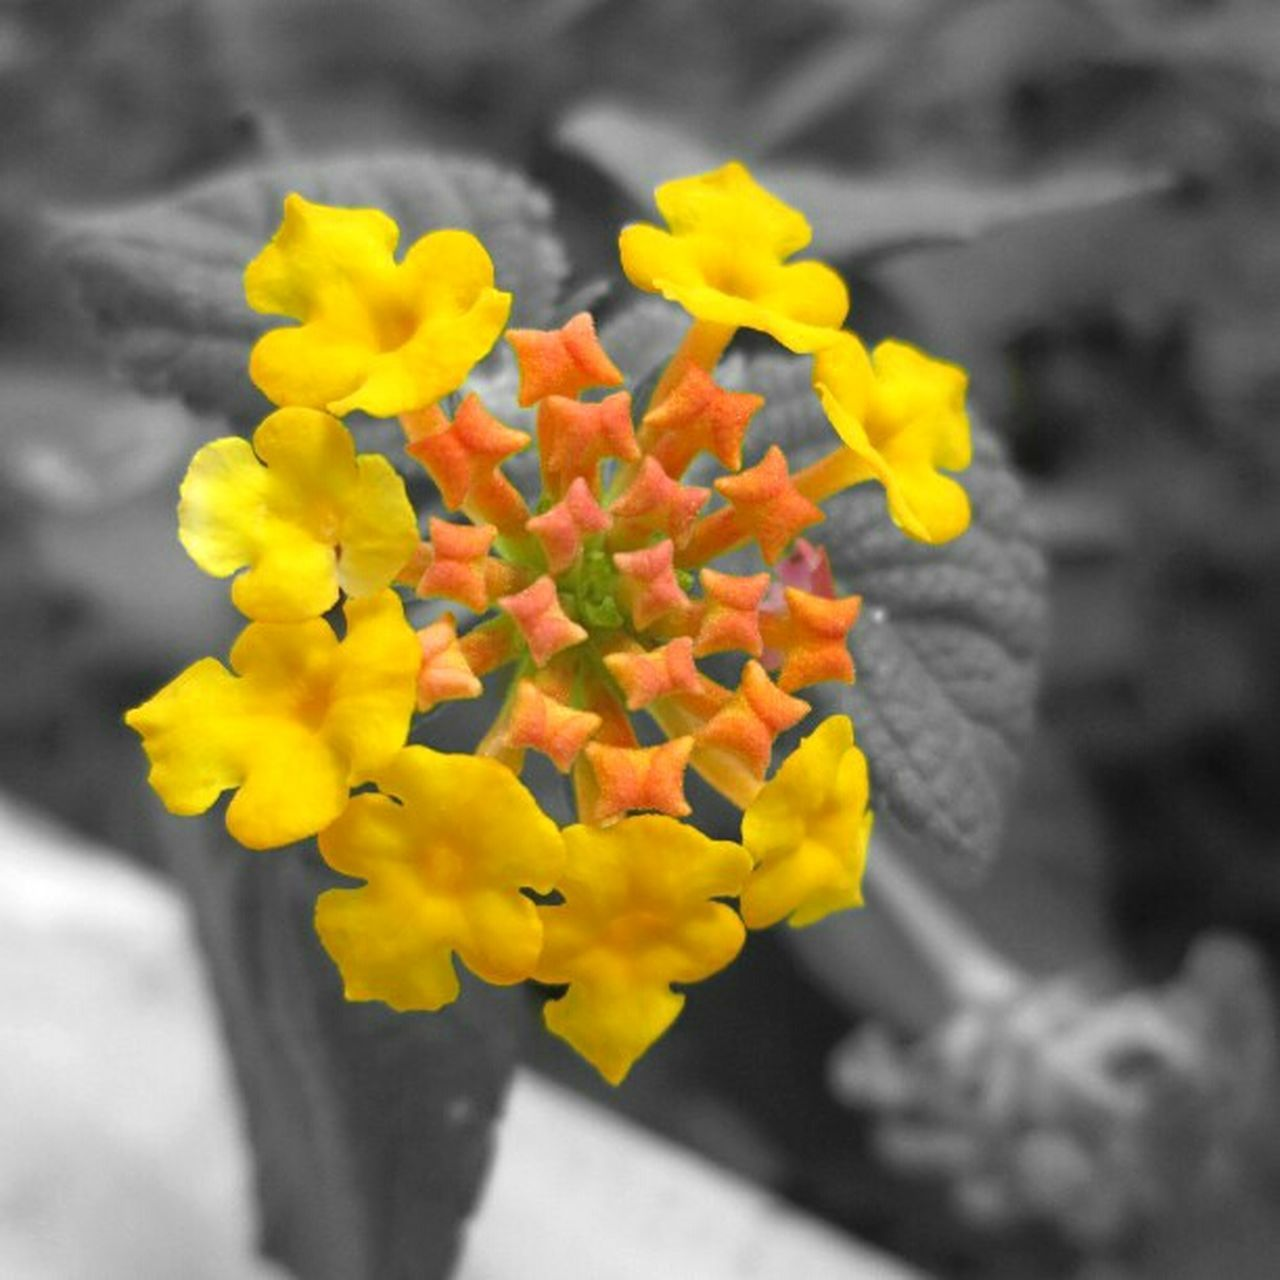 flower, yellow, petal, plant, growth, vibrant color, fragility, day, springtime, outdoors, no people, nature, beauty in nature, flower head, freshness, close-up, blooming